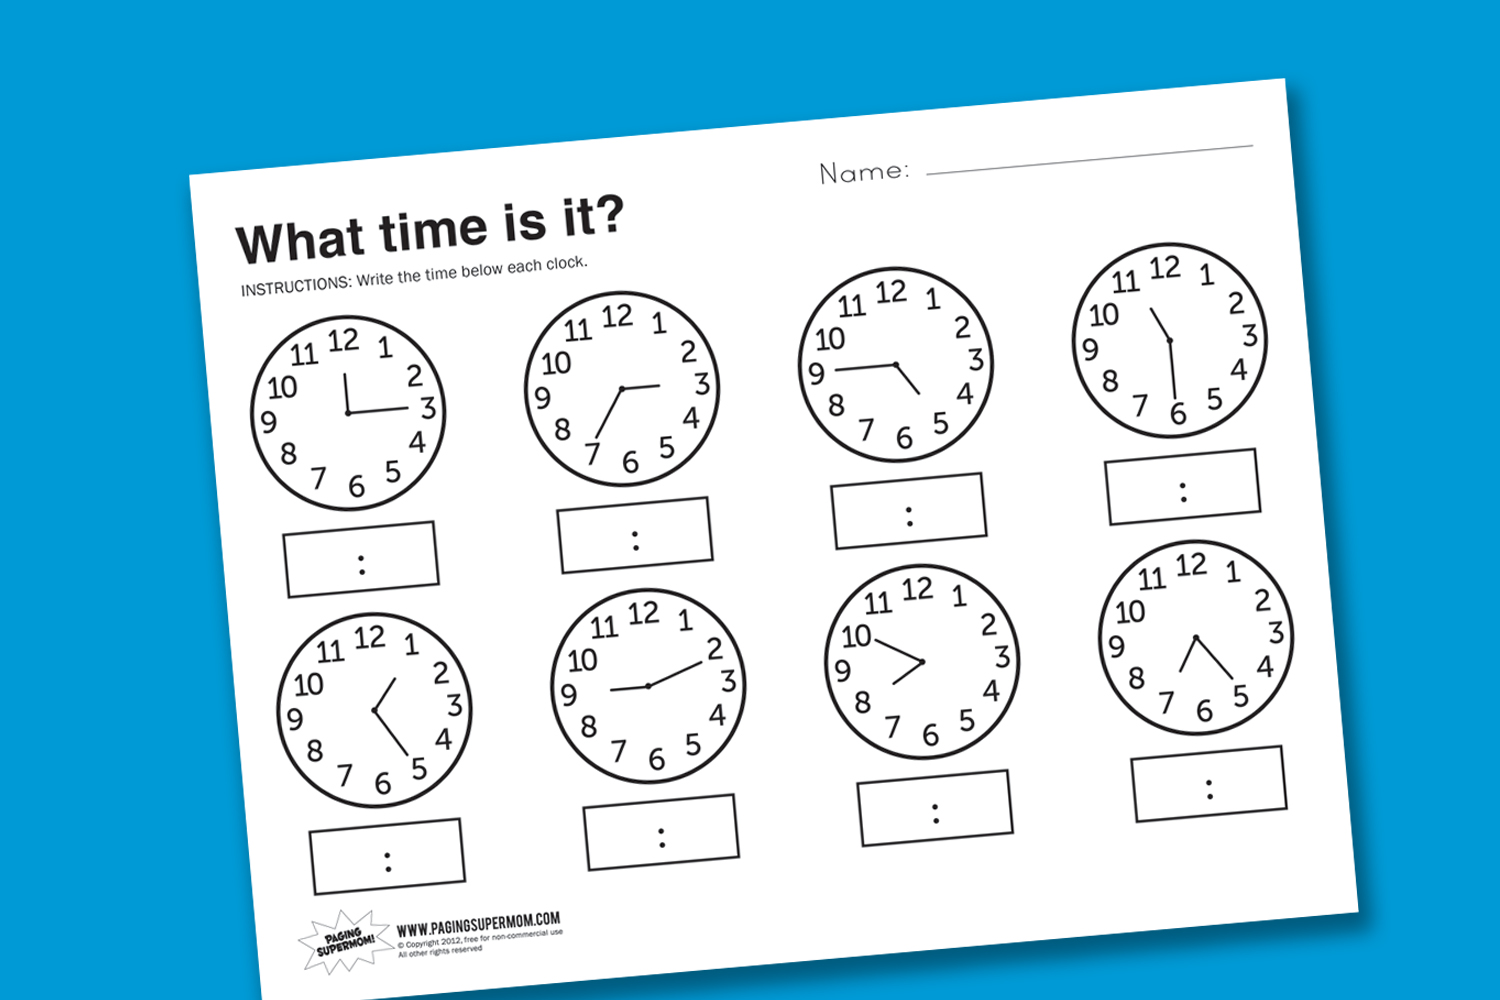 Workbooks worksheets for telling time : Worksheet Wednesday: What Time Is It? - Paging Supermom